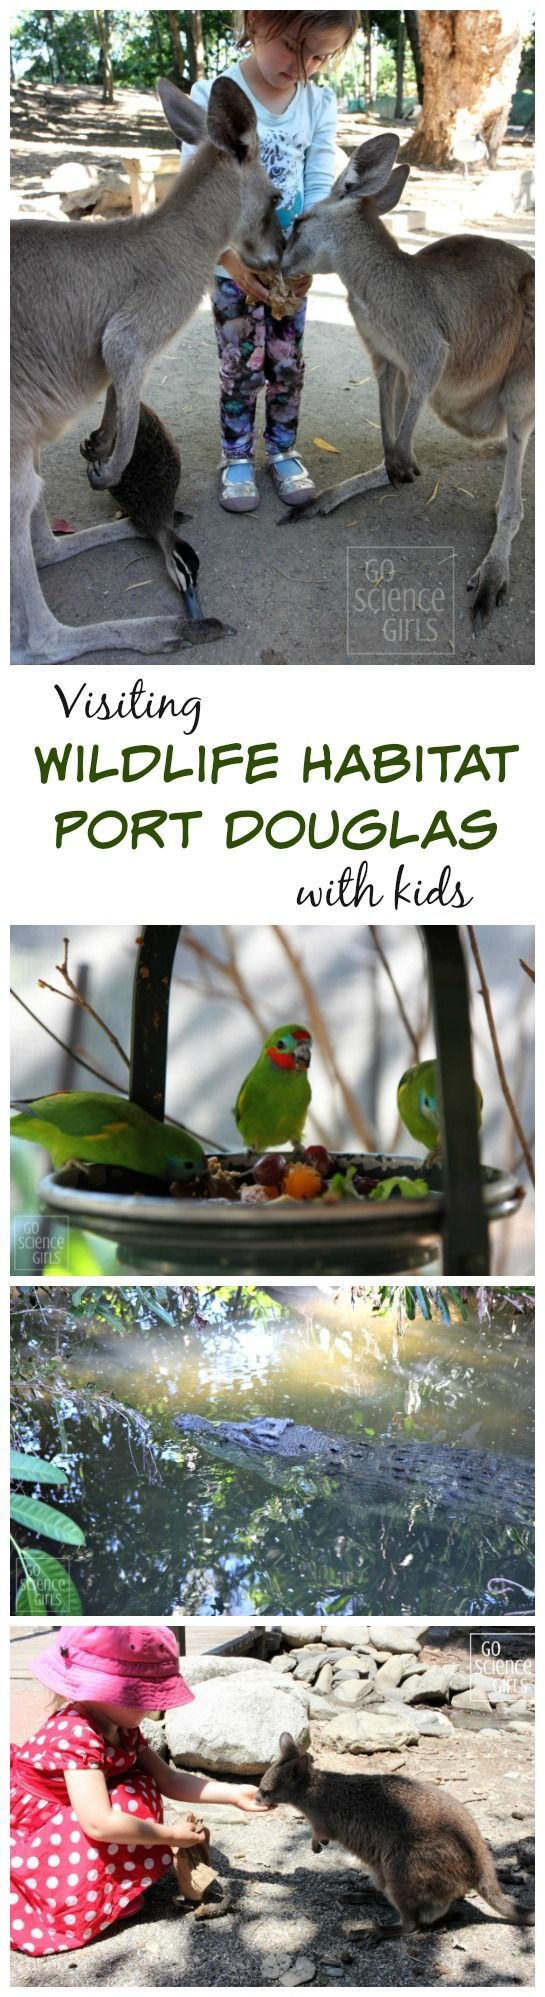 Wildlife Habitat Port Douglas - awesome way to incorporate biology science & nature when travelling with little kids in Australia's tropical north queensland